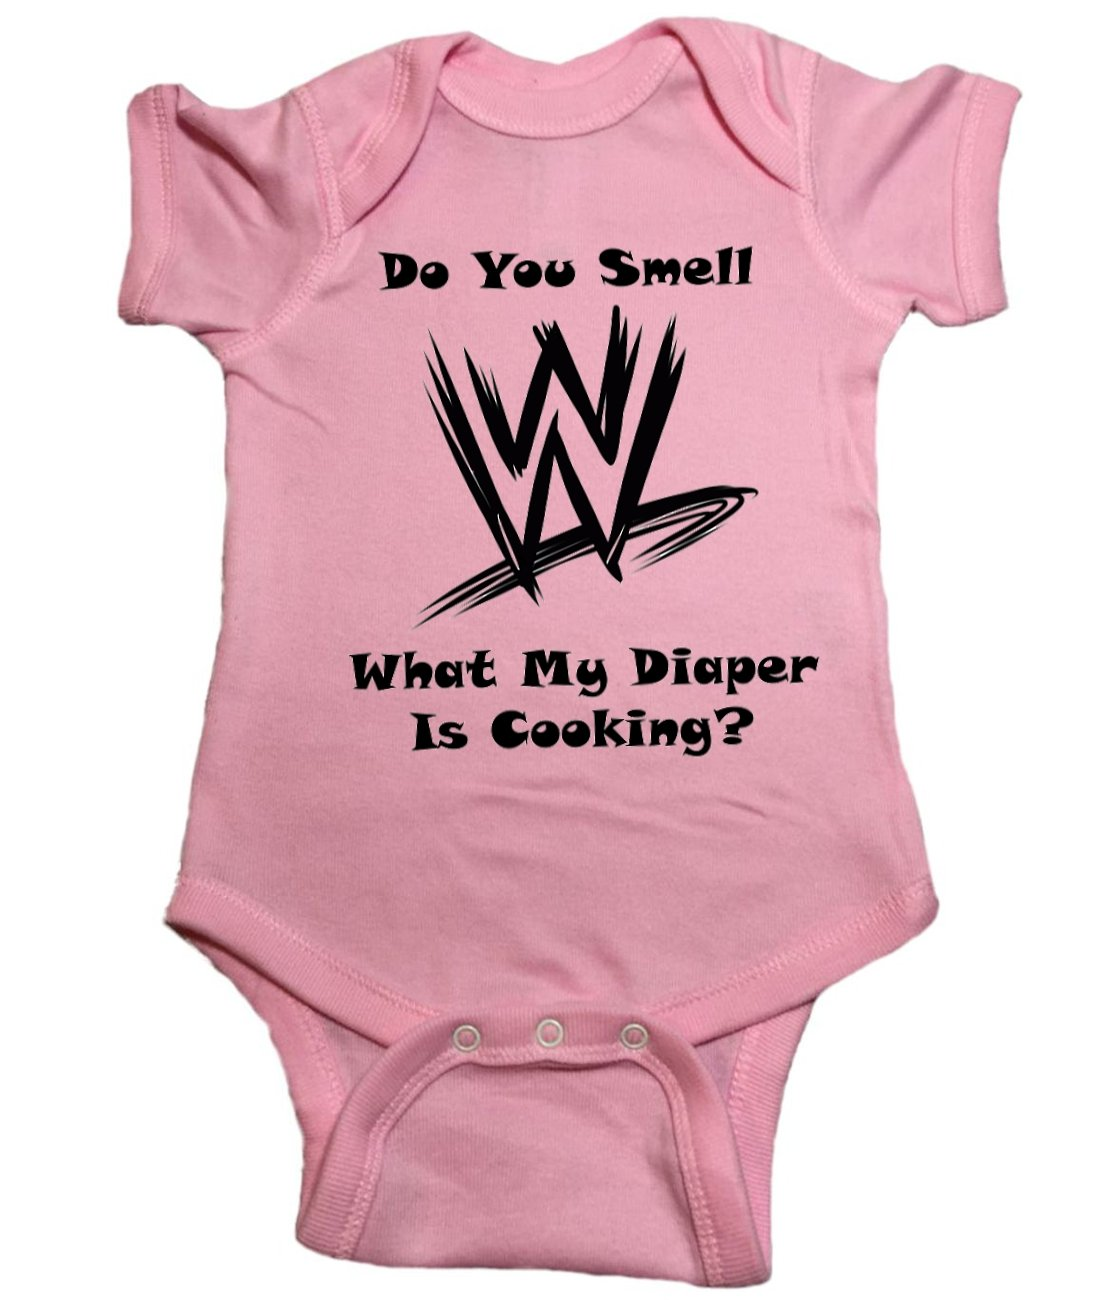 WWE Baby One Piece ''Do You Smell What My Diaper Is Cooking?'' (6 Month, Pink)